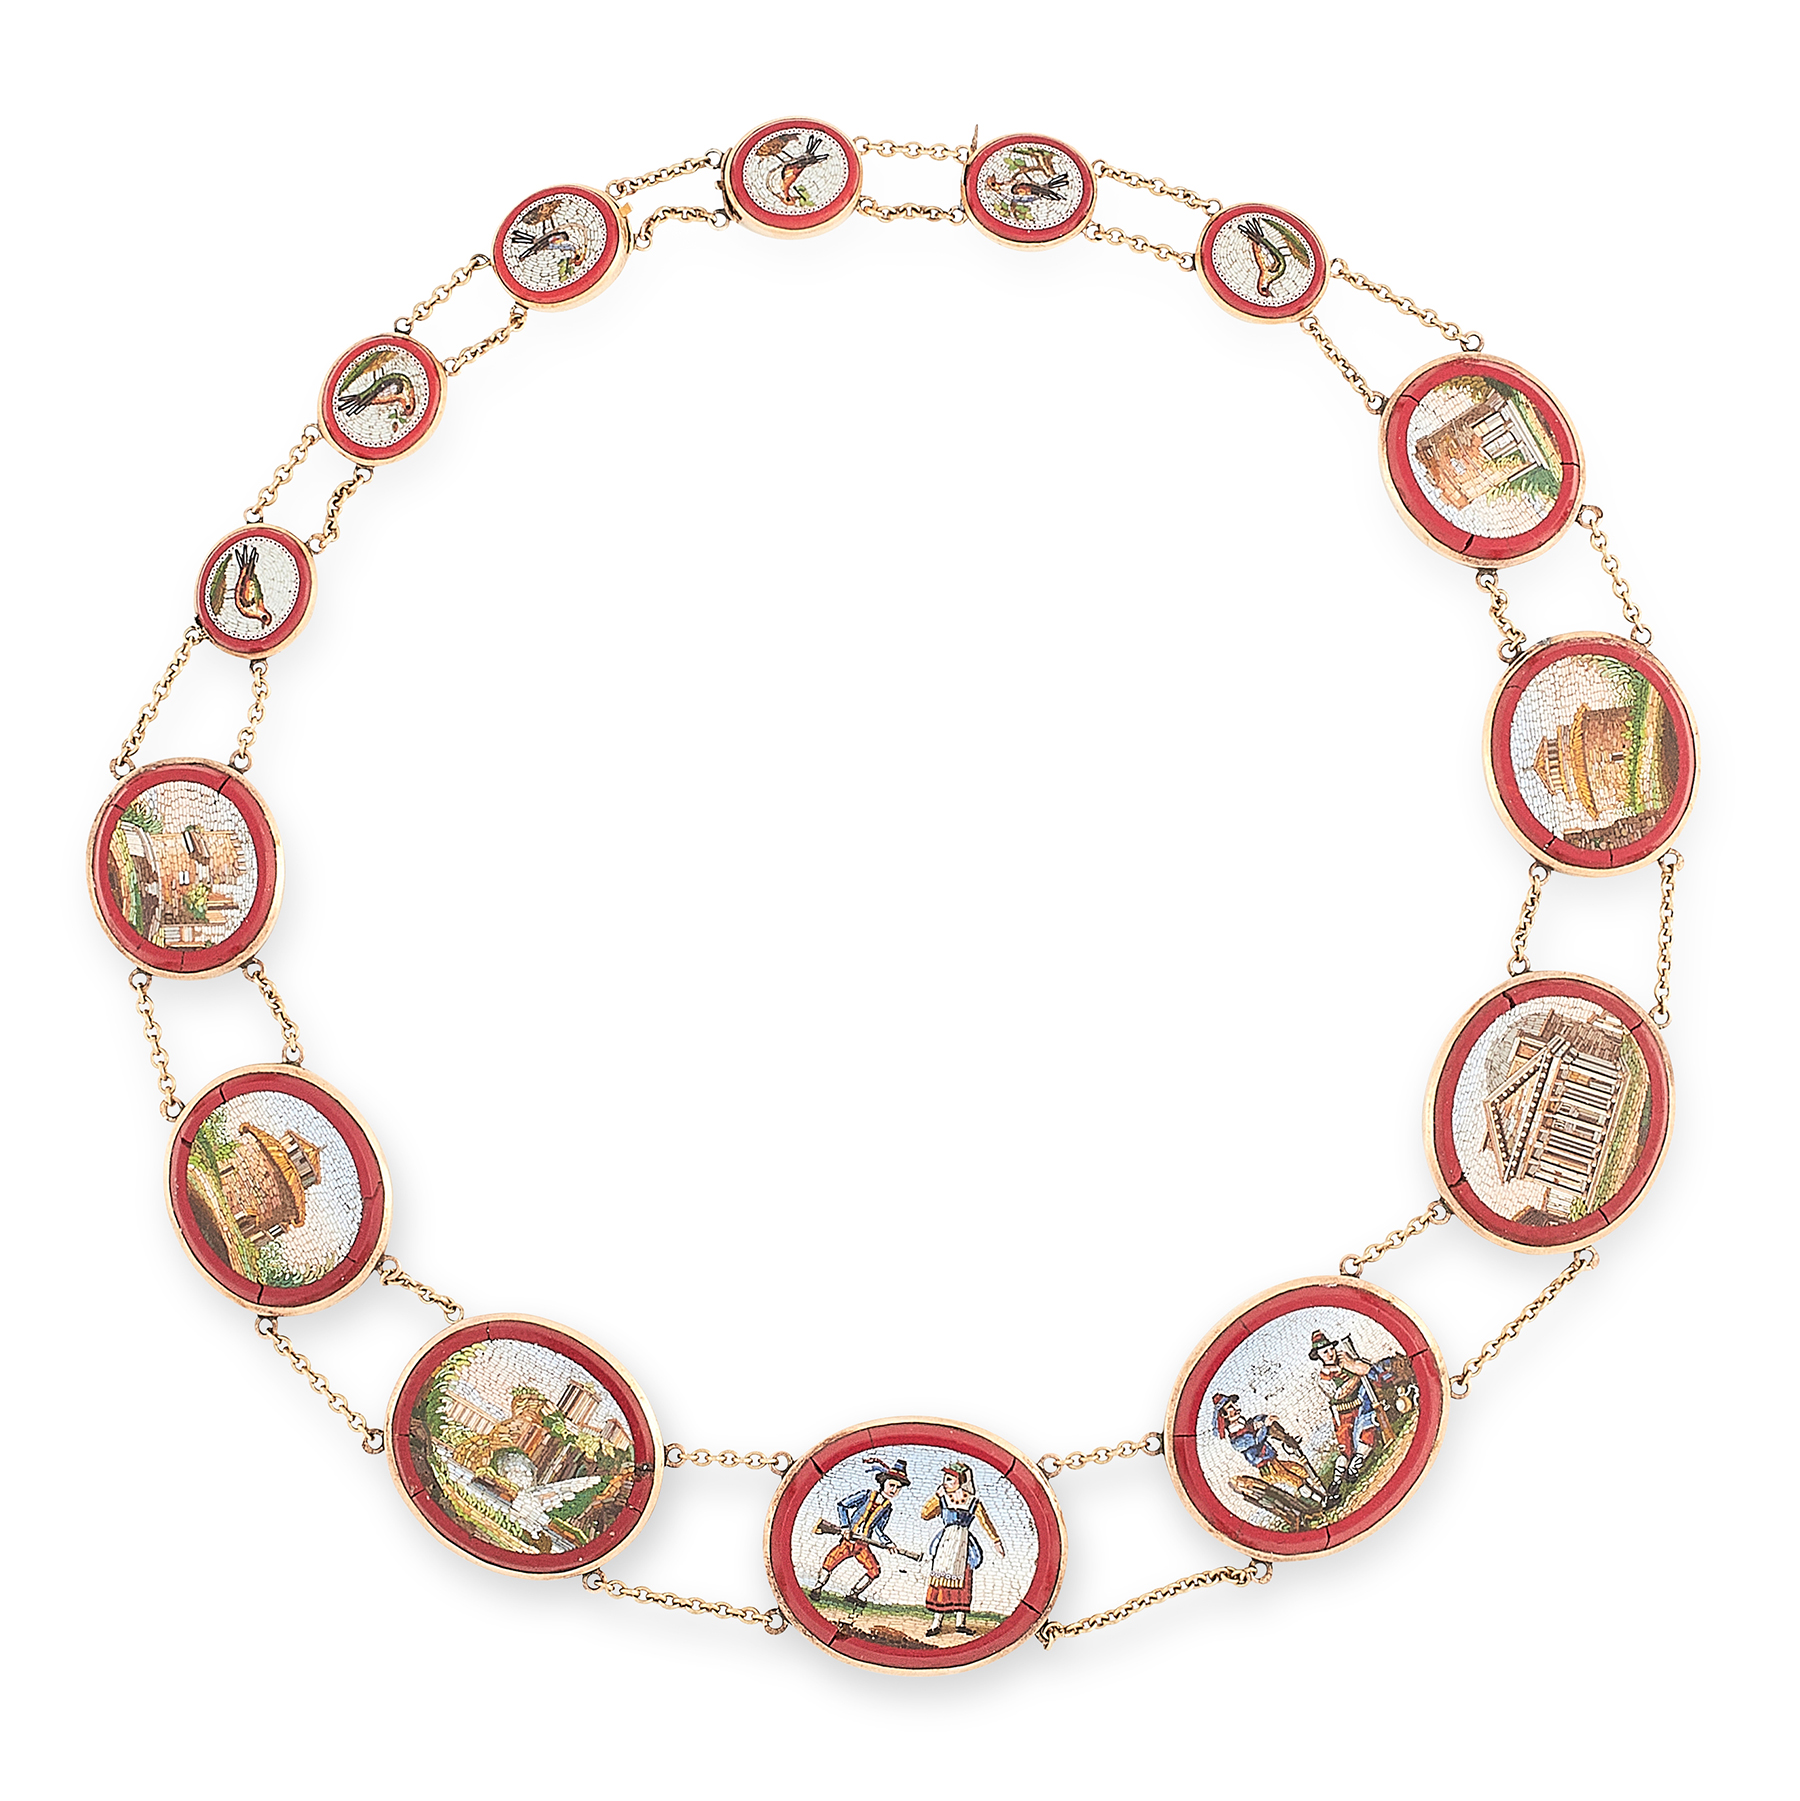 AN ANTIQUE MICROMOSAIC RIVIERE NECKLACE, 19TH CENTURY in yellow gold, comprising a row of fourteen